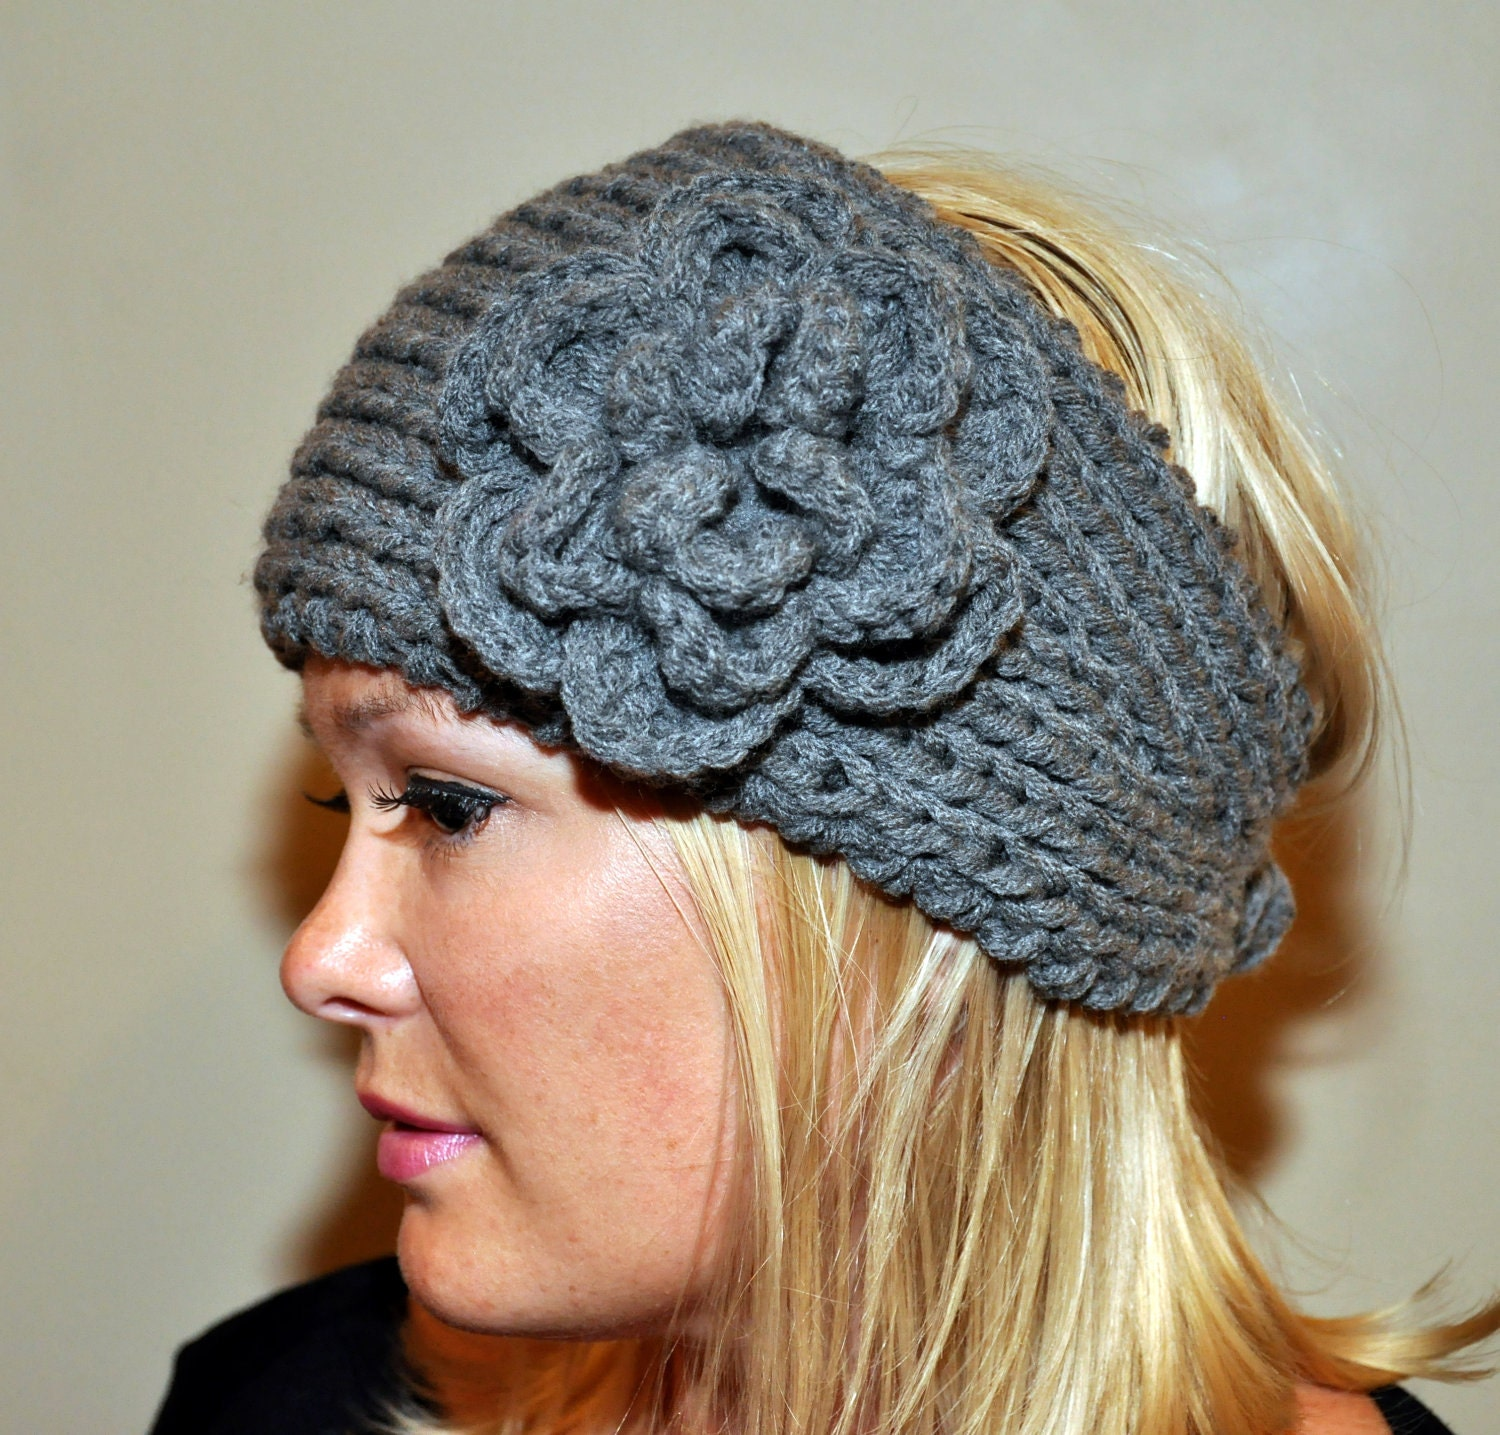 Knitting Patterns For Ear Warmers With Flower : Ear warmer Headband Headwrap knit crochet Wool Winter Warm